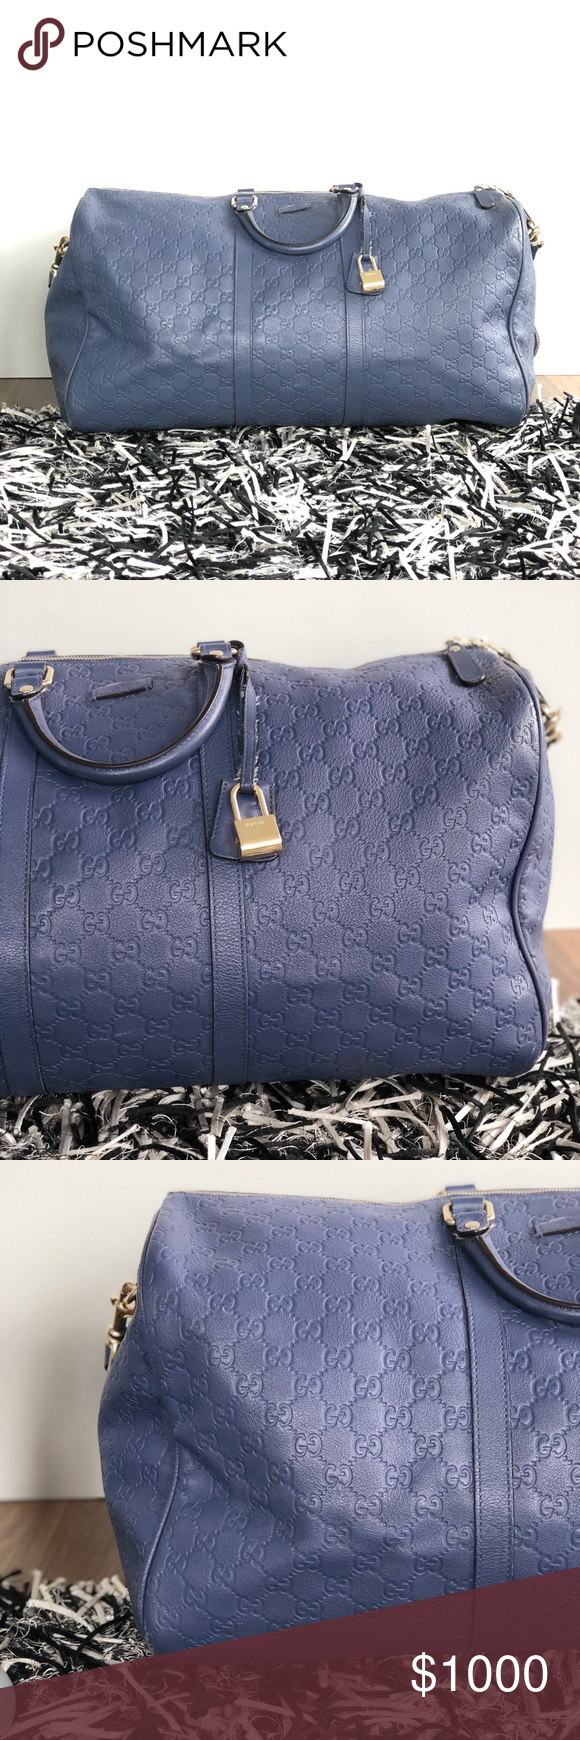 7acac87ef2c9 Gucci limited edition large duffle bag blue Gucci GG soft leather limited  edition carry on duffel